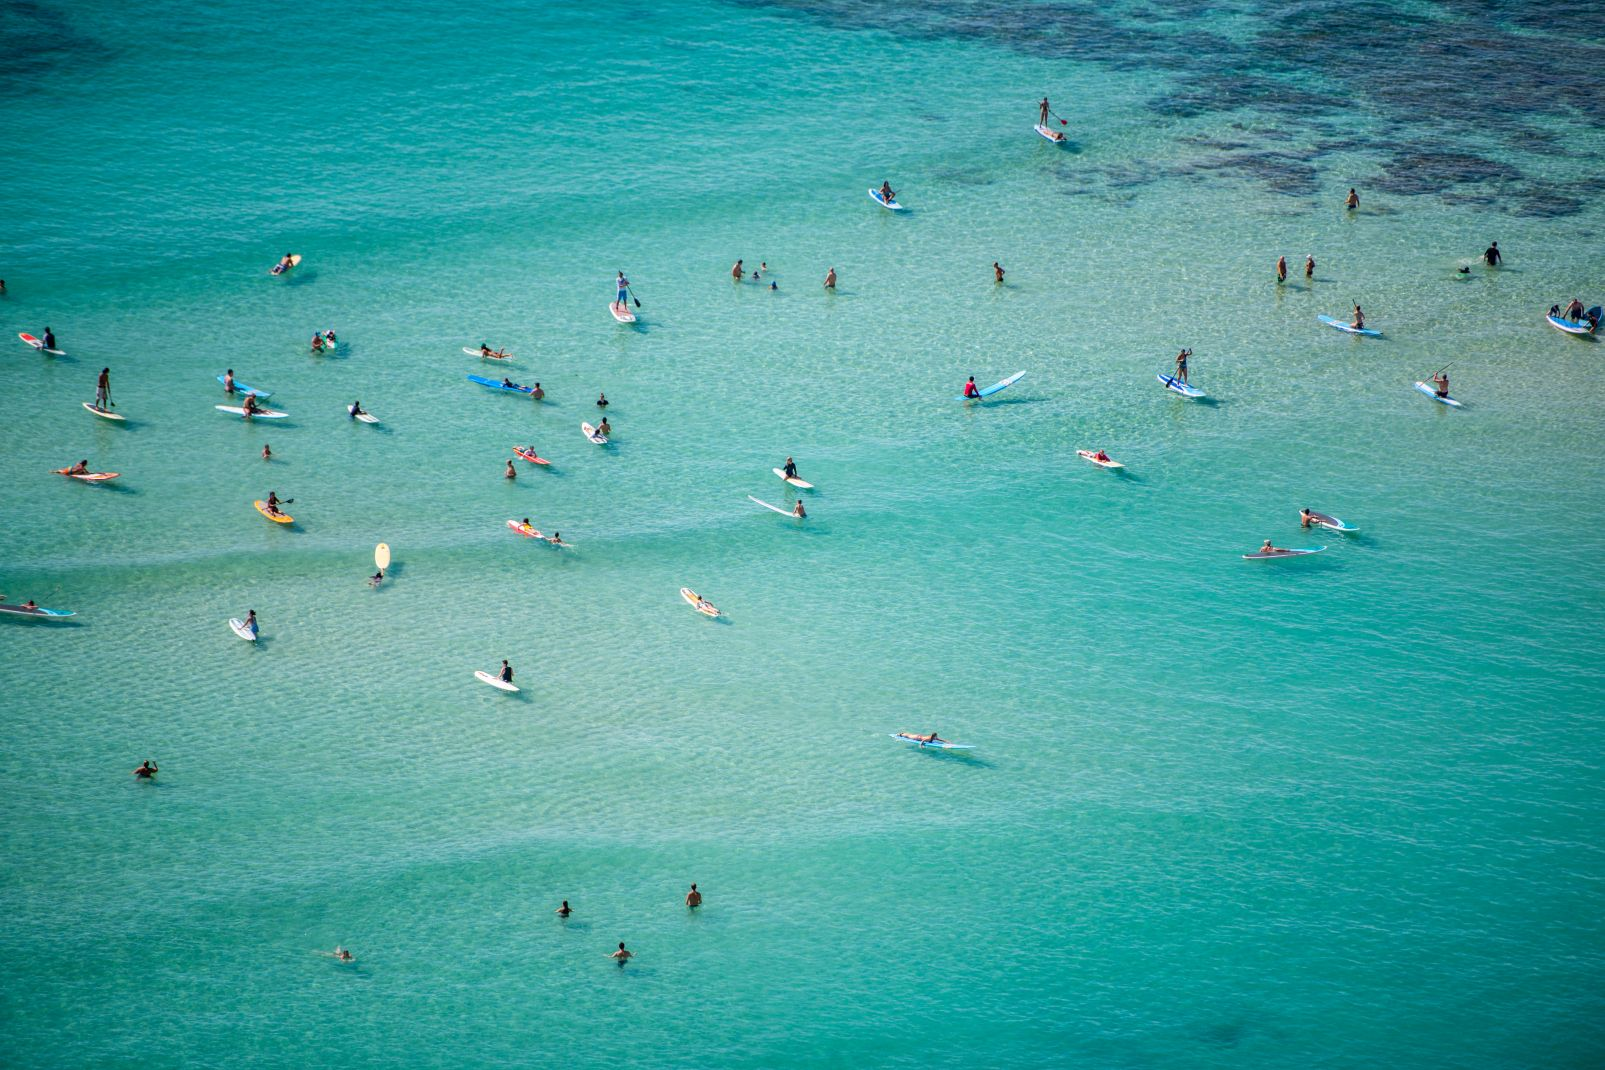 Amérique, USA, Etats-Unis, Hawaï, Hawaii, surf, surfeuse, mer, bain, océan, sport, glisse, honolulu, waikiki, oahu